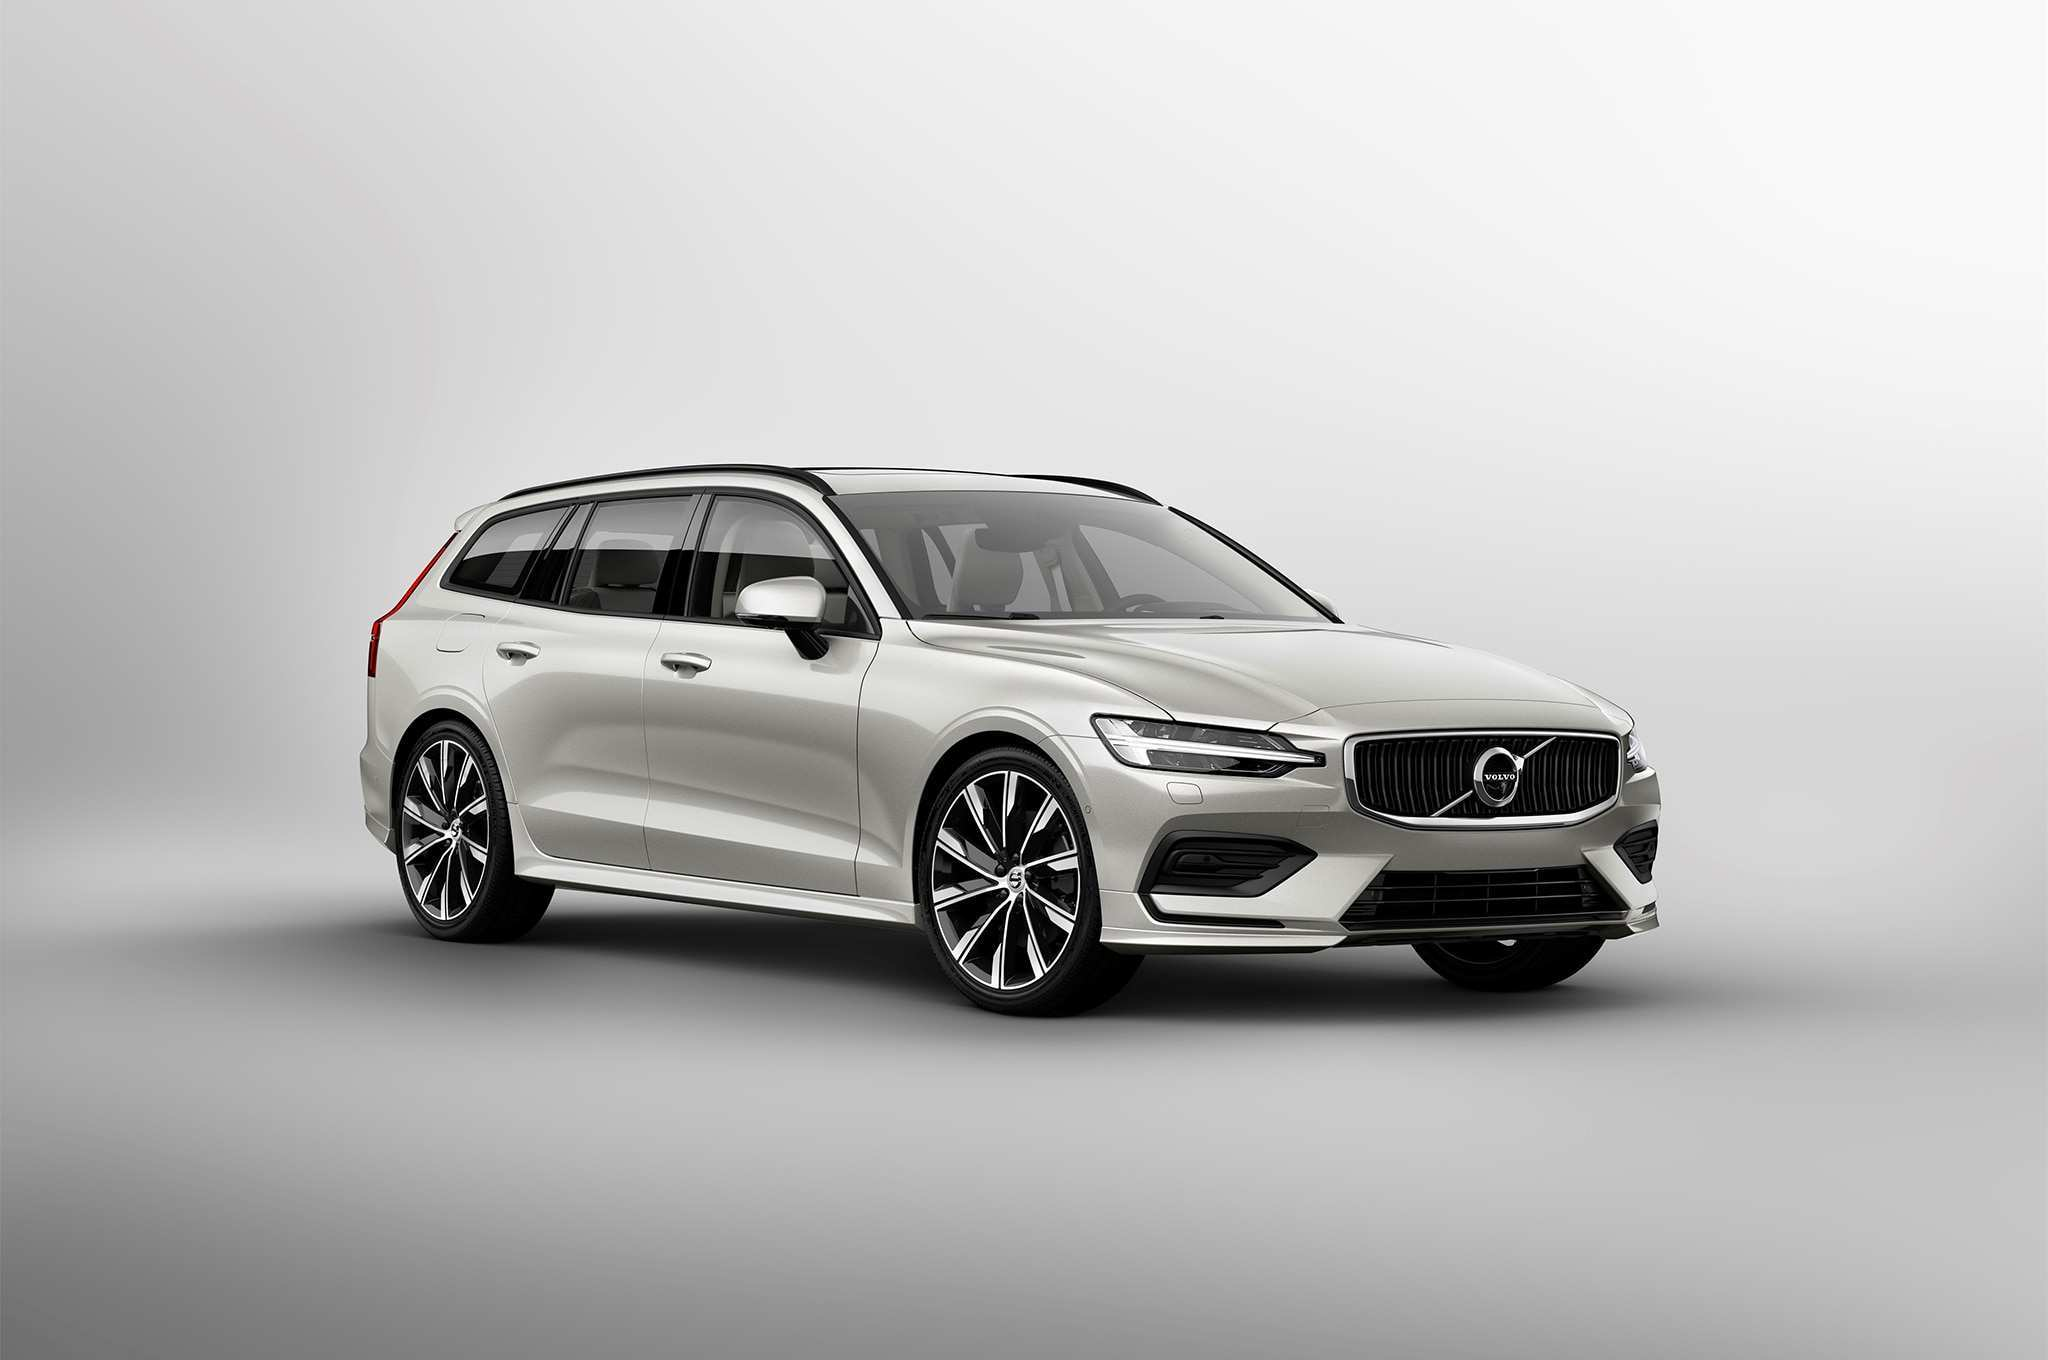 93 Gallery of 2019 Volvo S60 Polestar Redesign for 2019 Volvo S60 Polestar